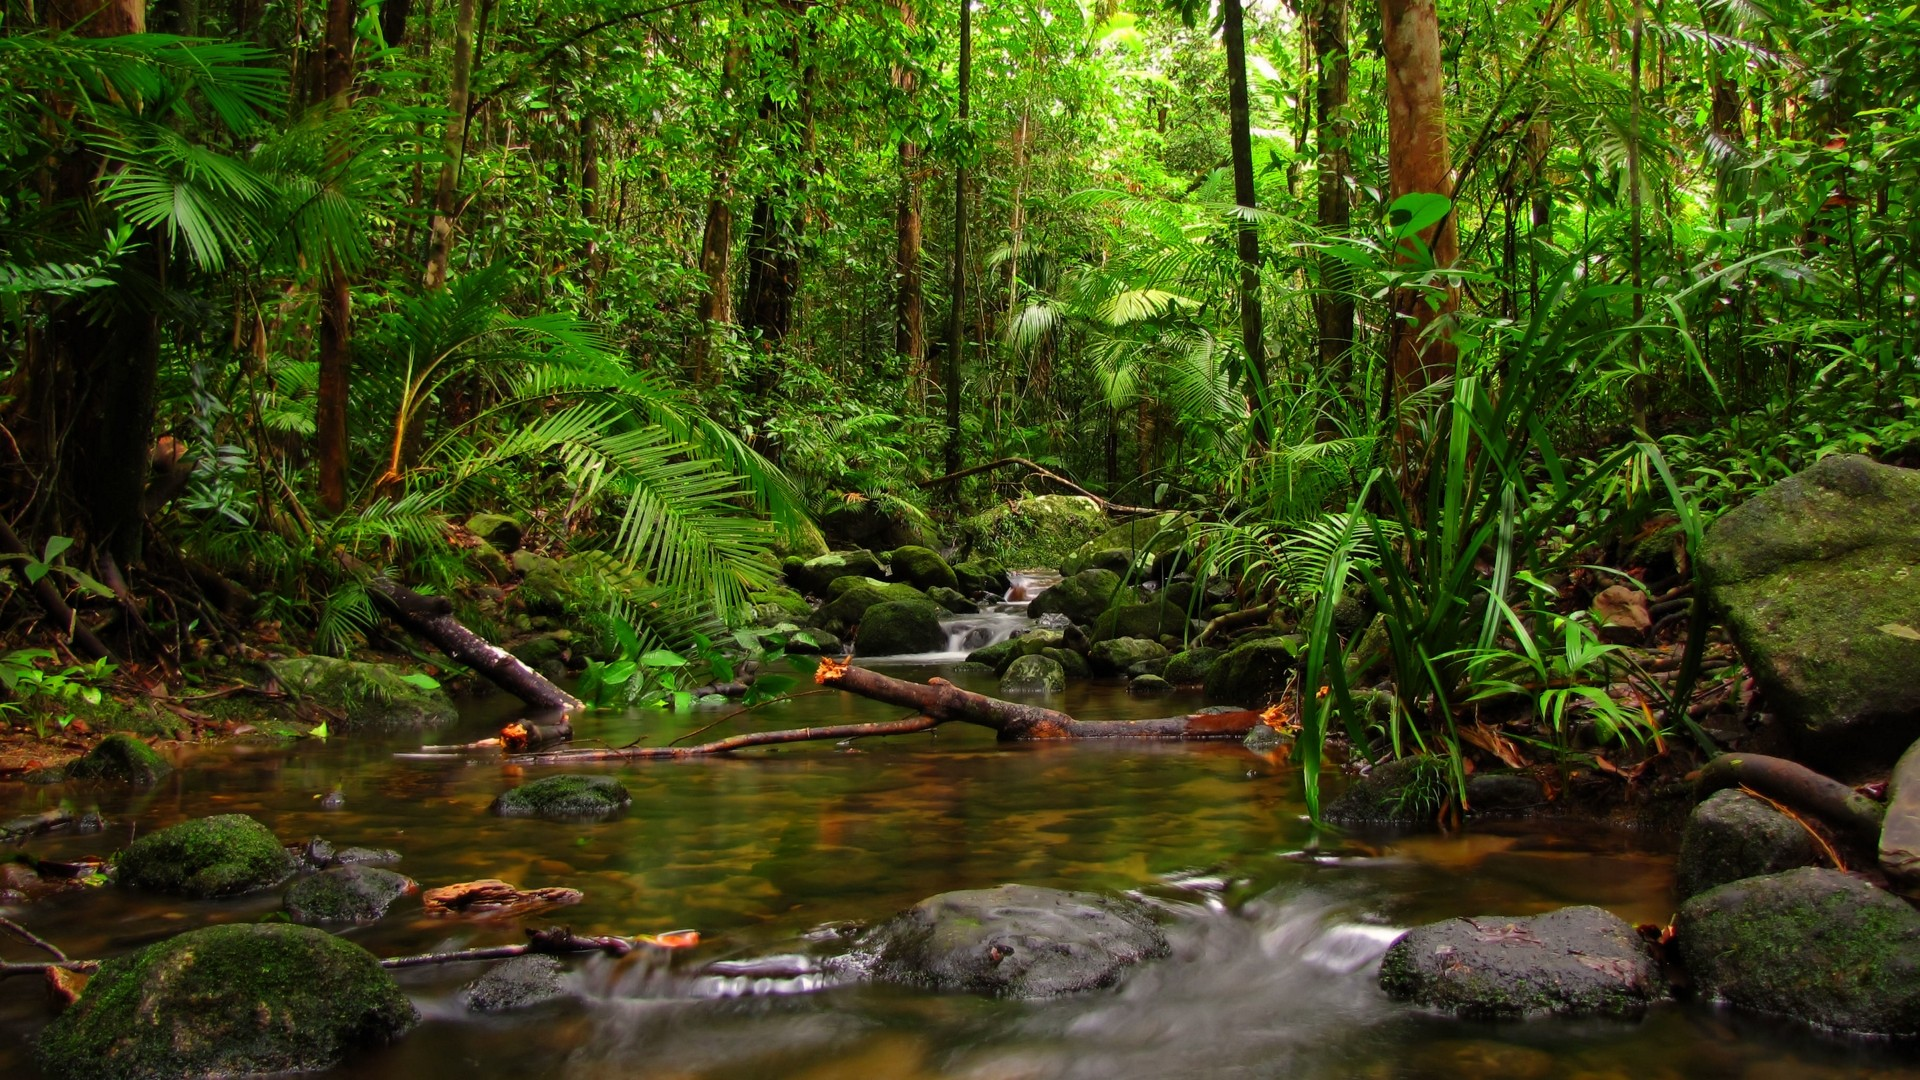 images from river jungle forest nature hd picture download